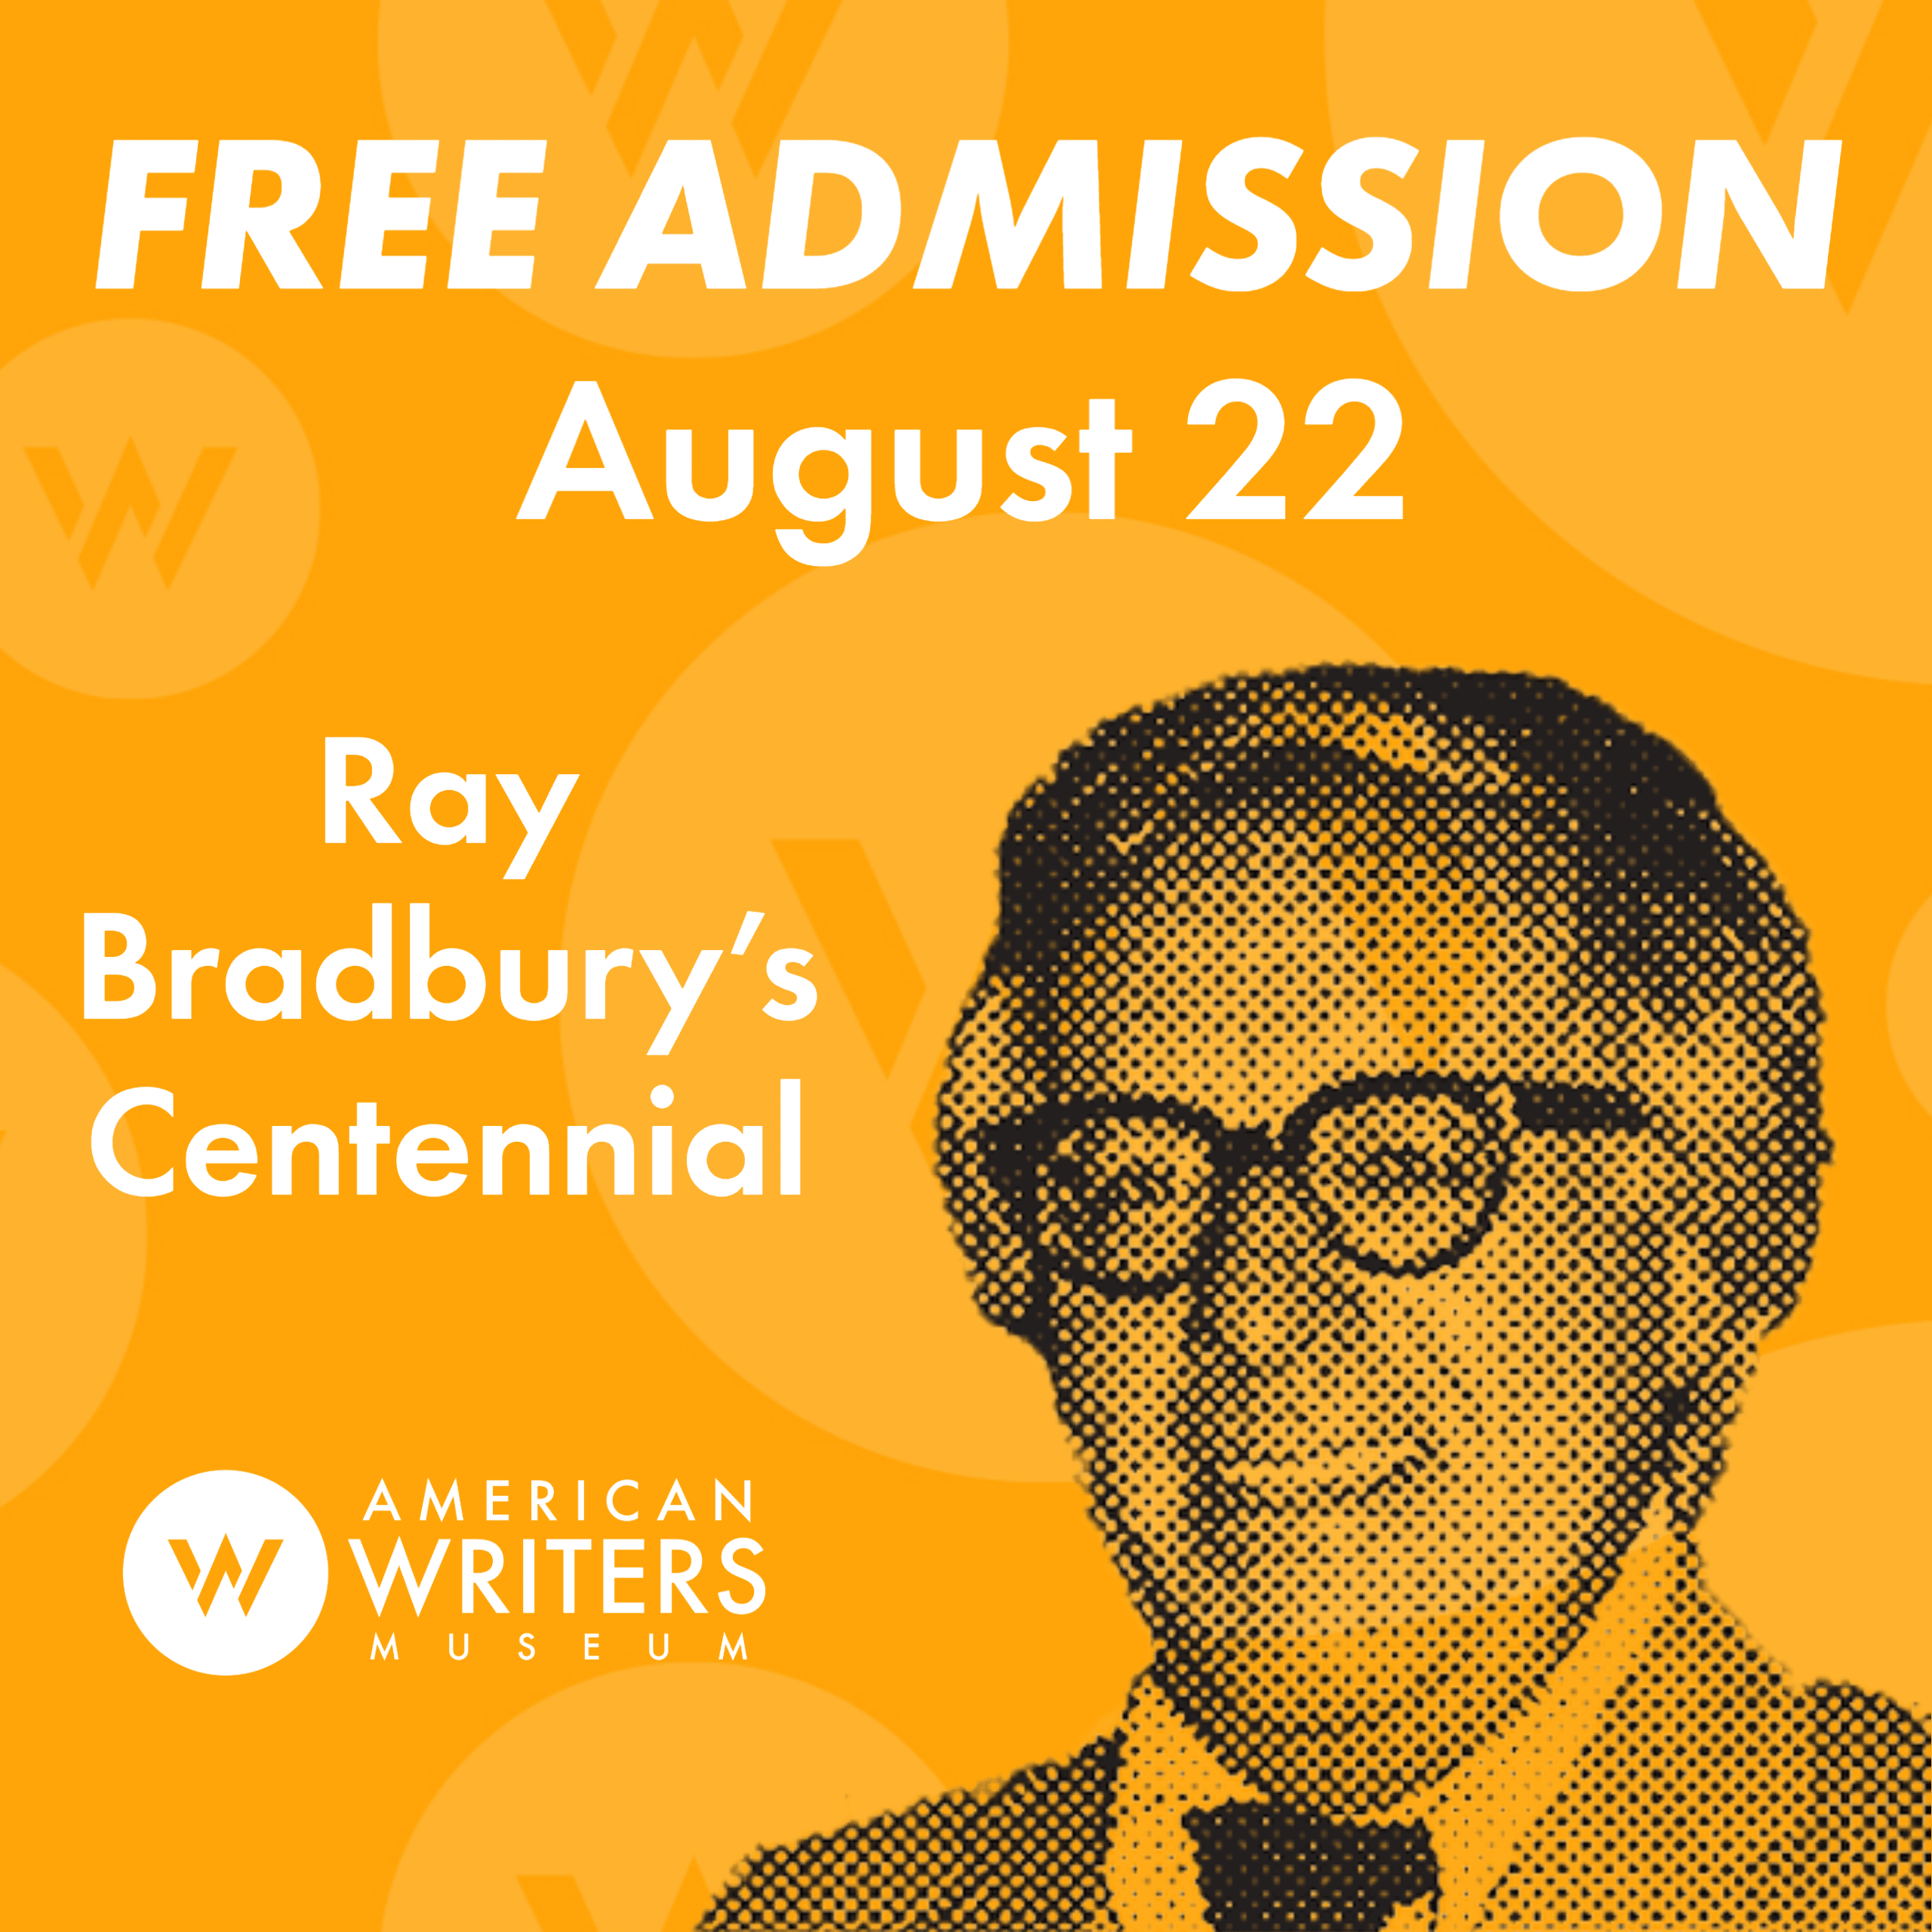 Celebrate the 100th anniversary of Ray Bradbury's birthday with free admission to the American Writers Museum!